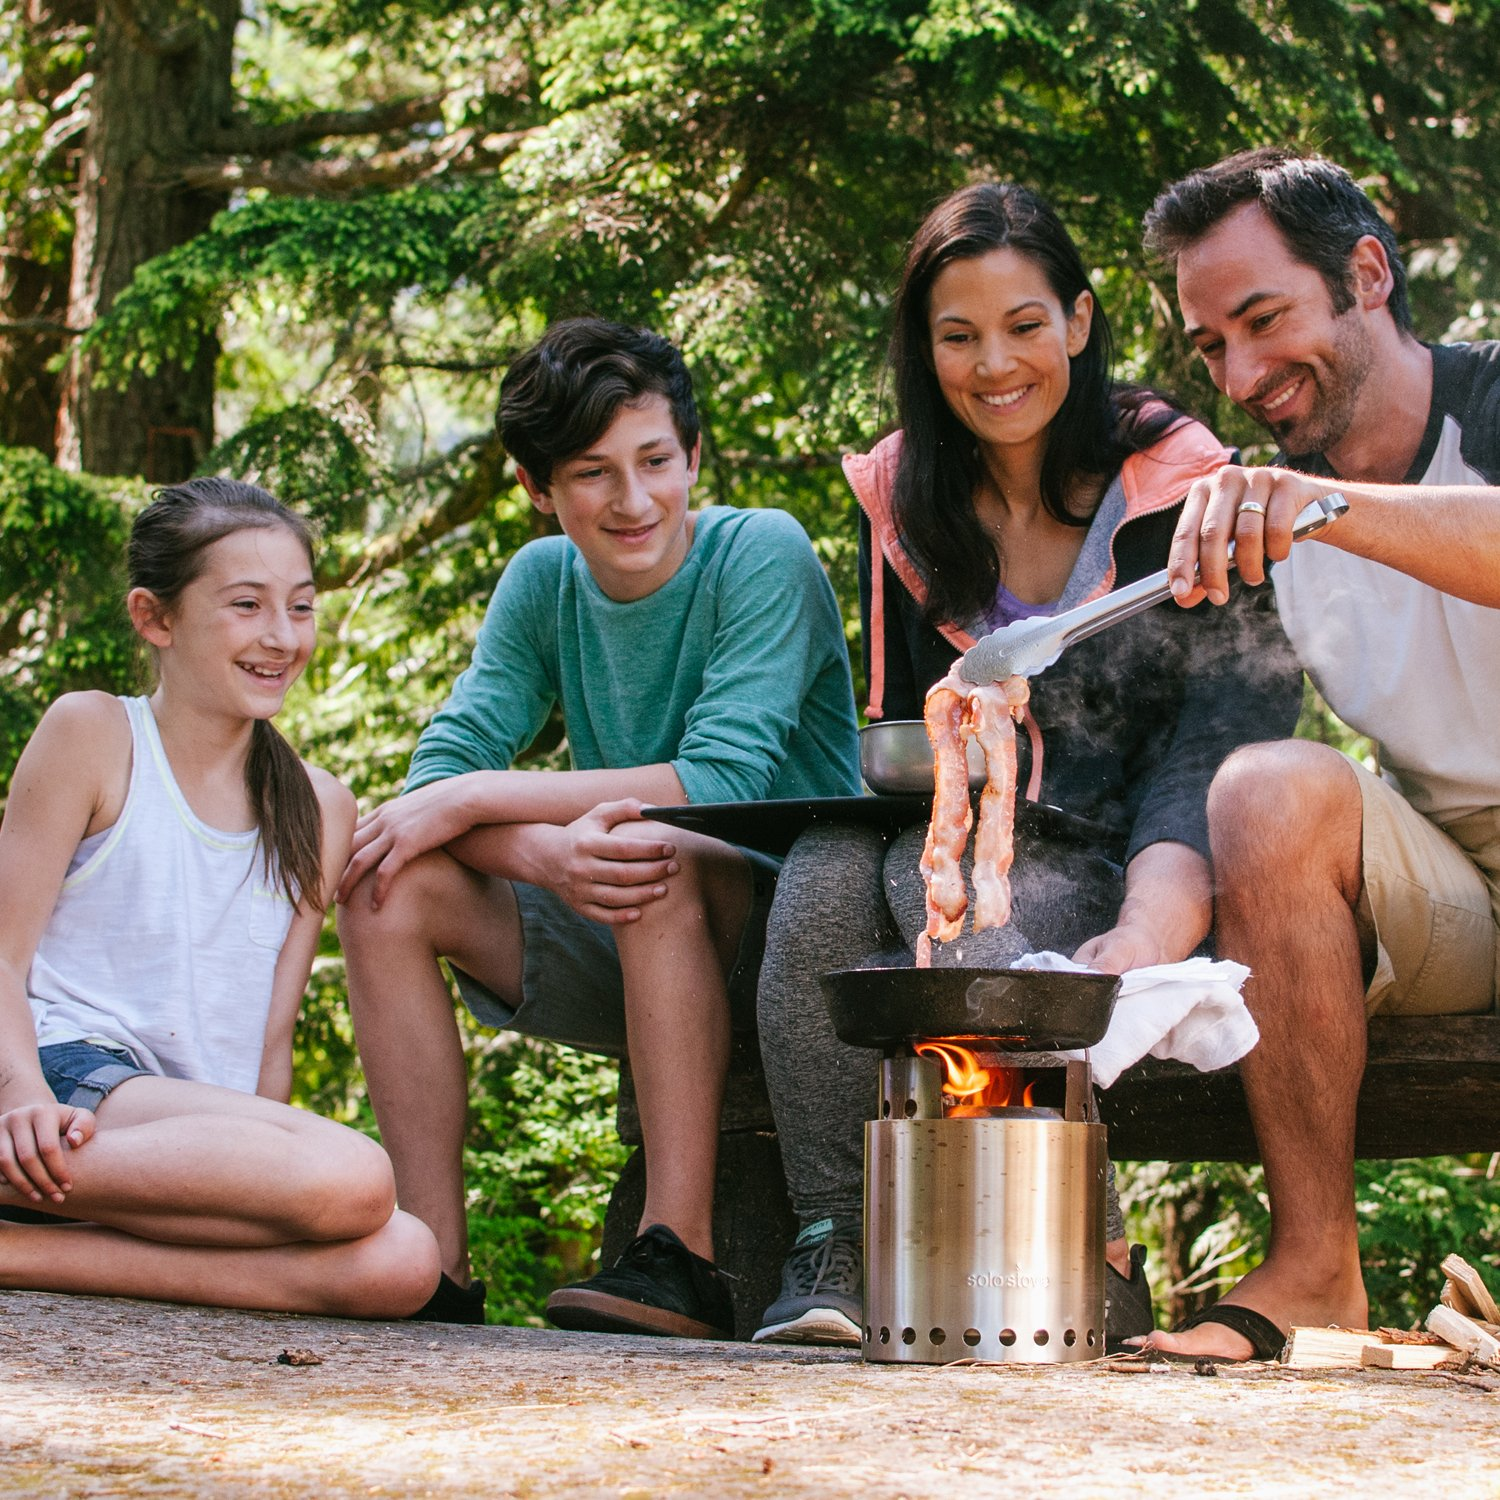 Solo Stove Campfire - 4+ Person Compact Wood Burning Camp Stove for Backpacking, Camping, Survival. Burns Twigs - NO Batteries or Liquid Fuel Gas Canister Required. by Solo Stove (Image #8)